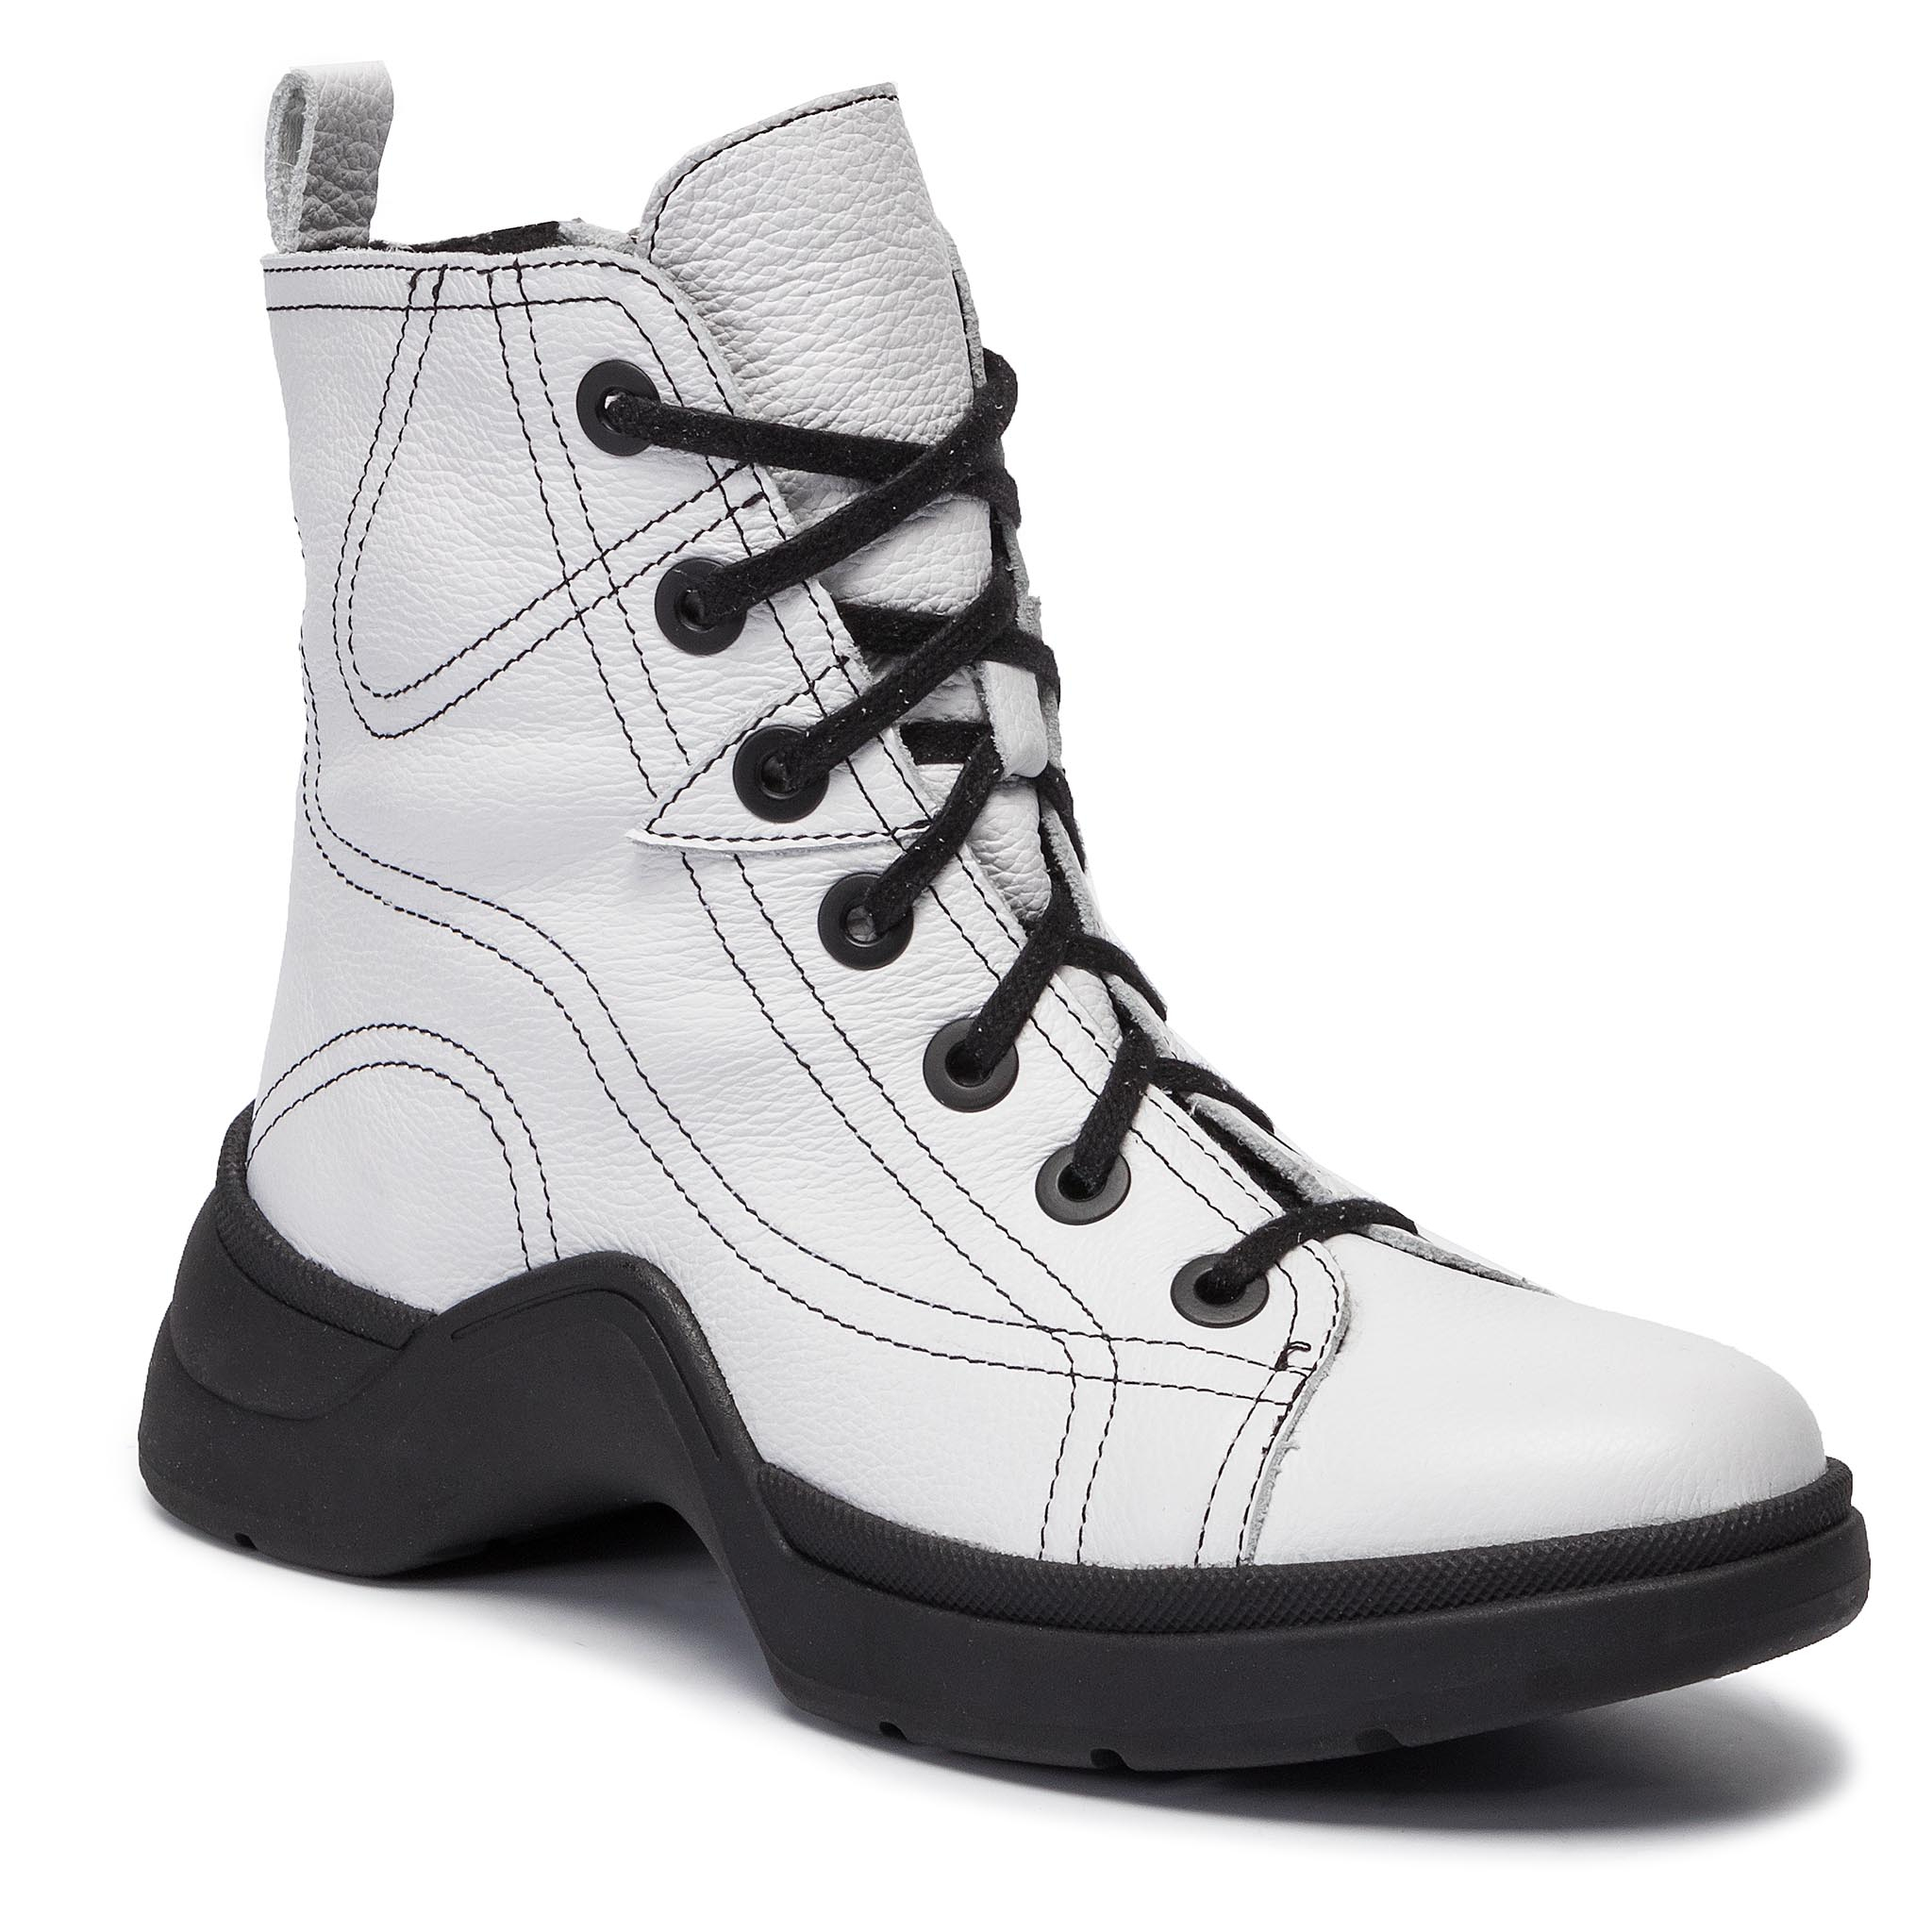 Bottines ANN MEX - 0531 00GDR Blanc